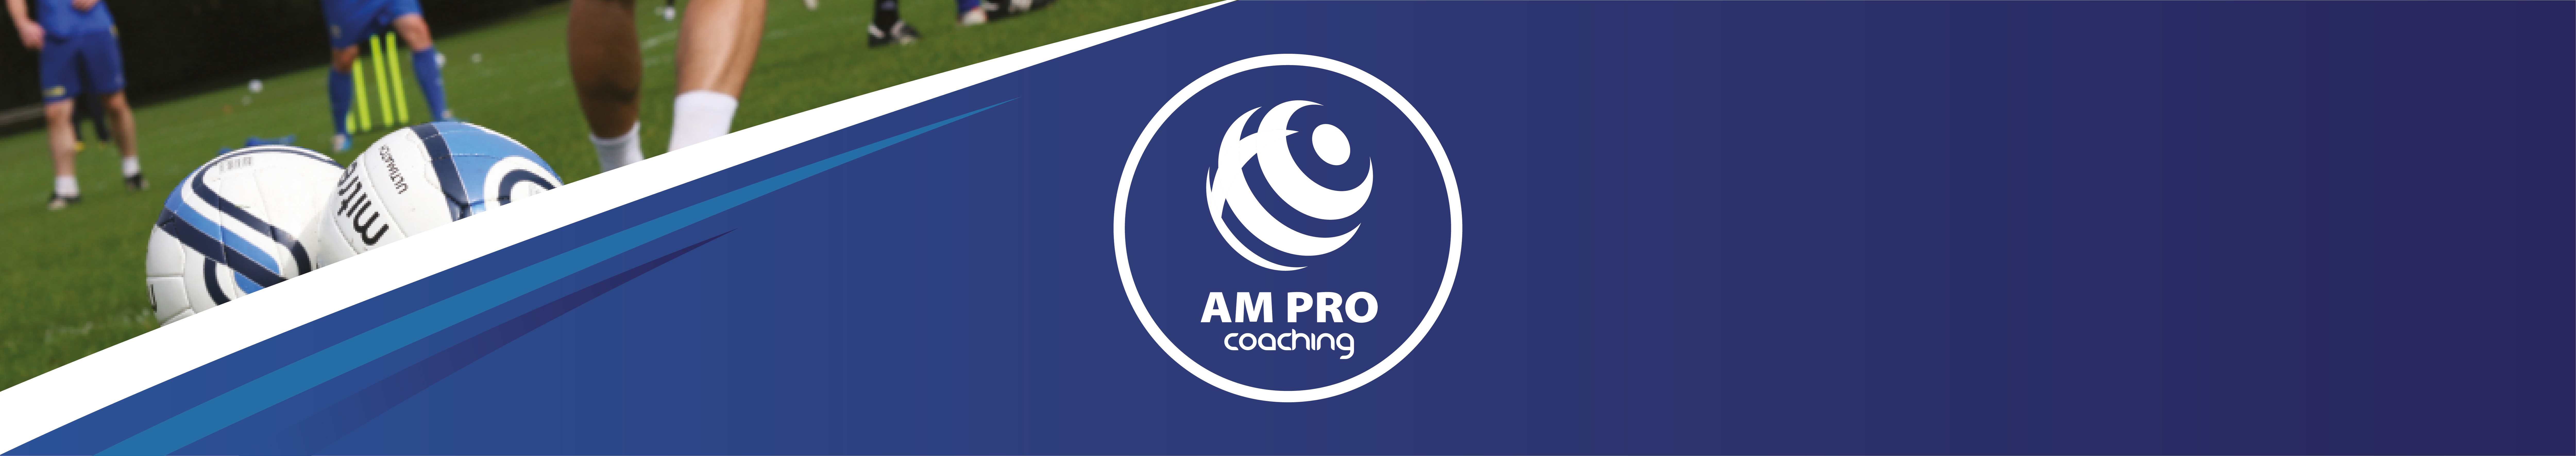 AM PRO Coaching